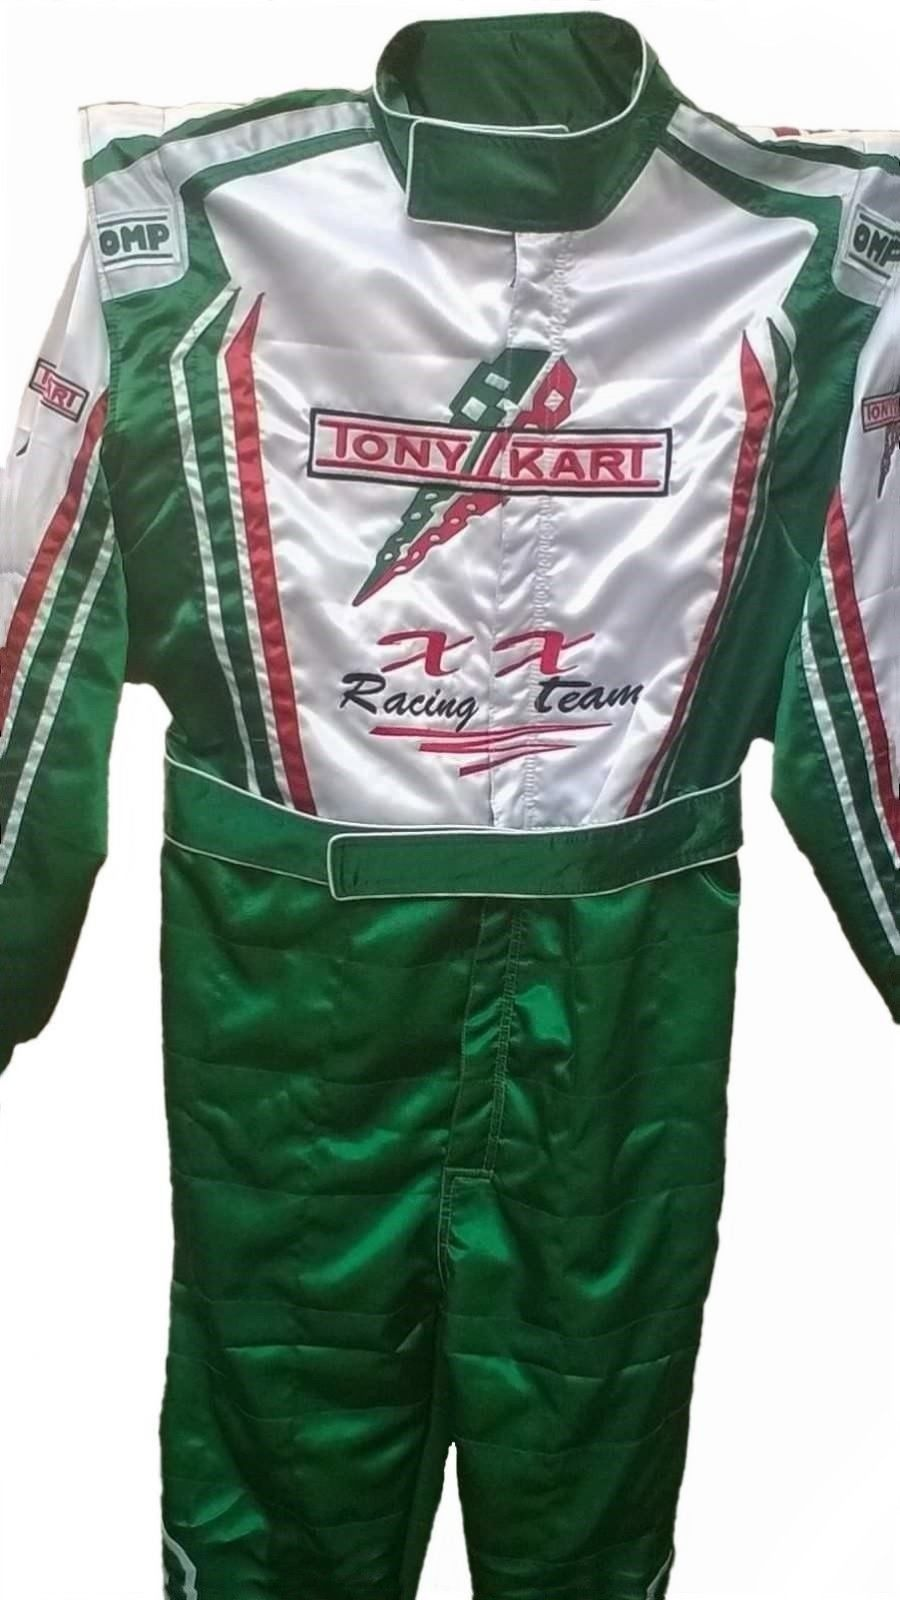 GO KART RACE SUIT TONY KART CIK/FIA LEVEL 2 APPROVED WITH FREE GIFT